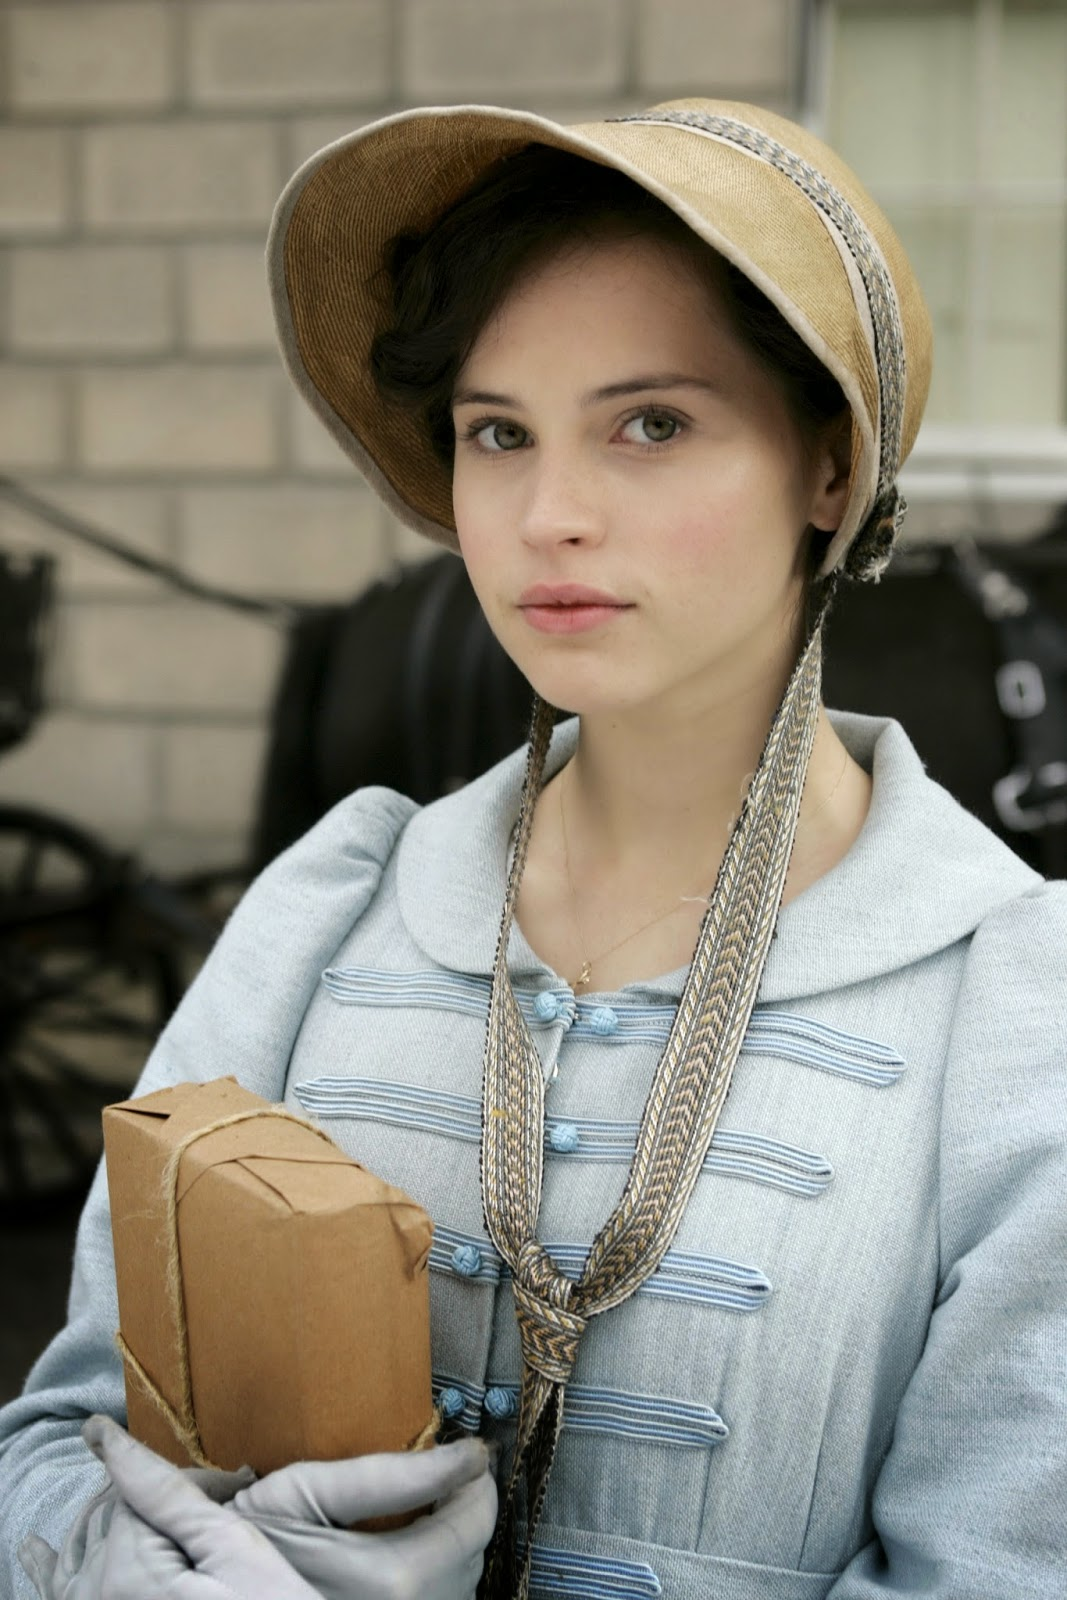 Felicity Jones as Catherine Morland from Northanger Abbey 2007